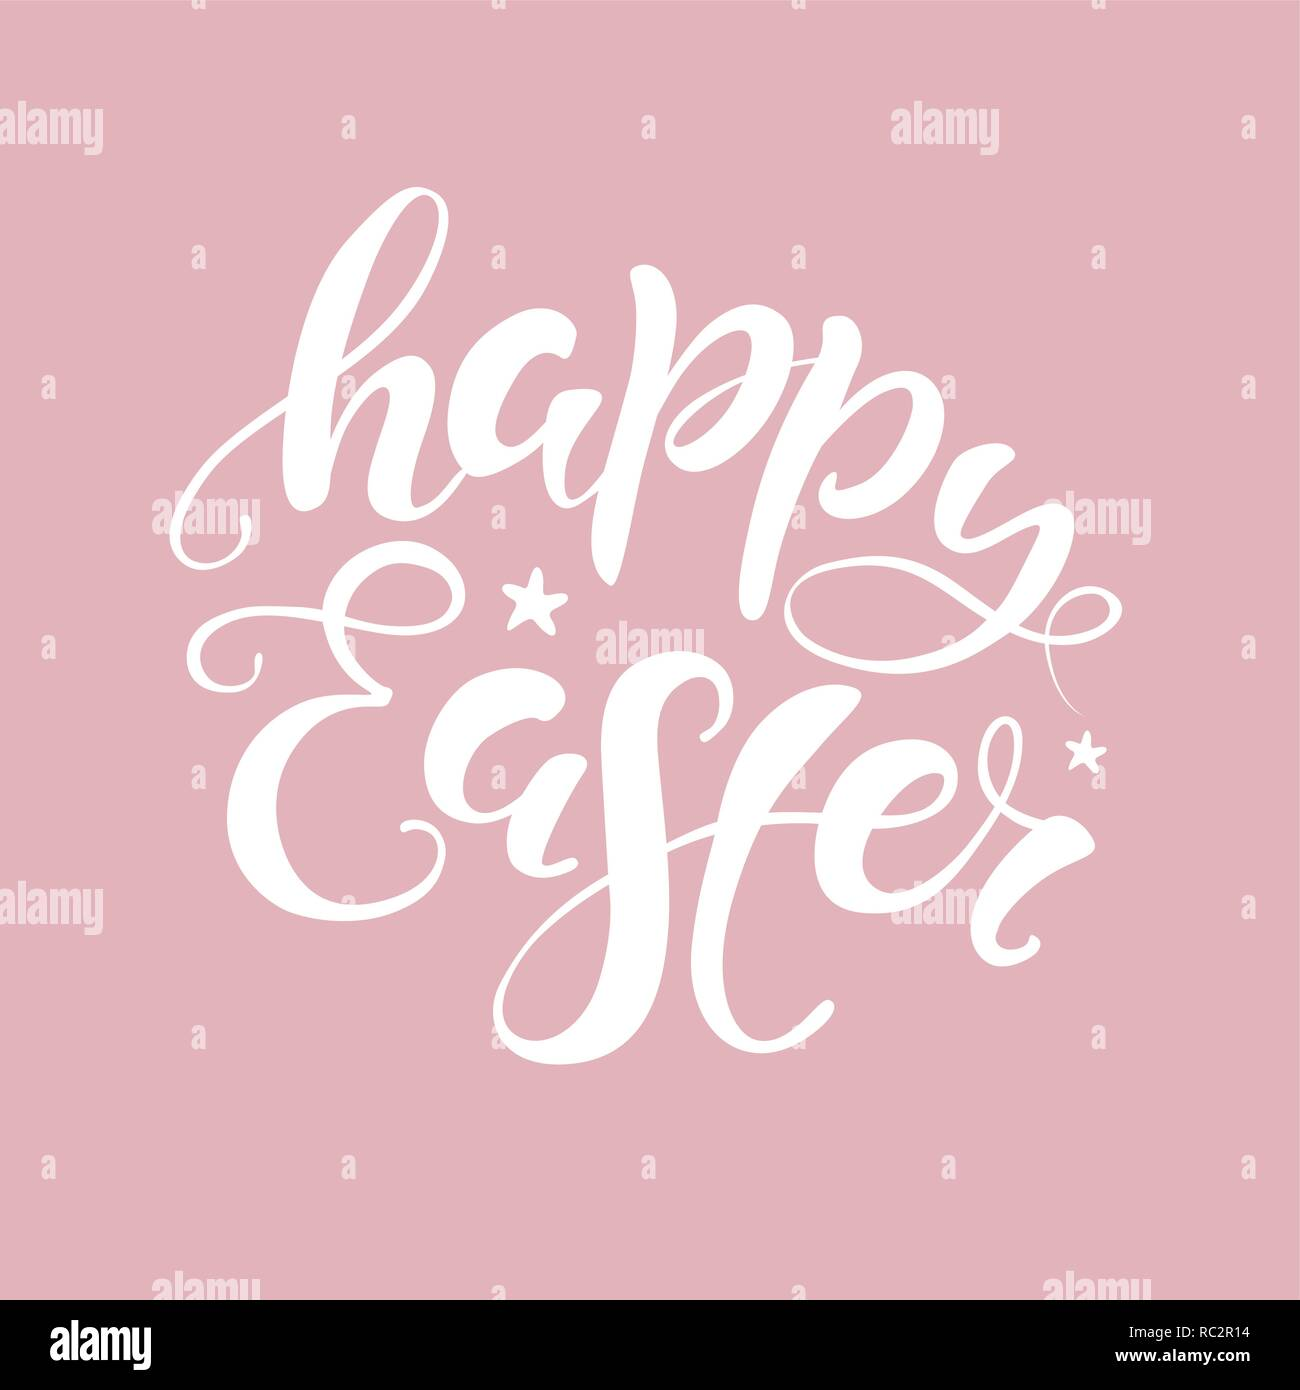 photo about Happy Easter Cards Printable named Vector Content Easter bunny lettering card. quotation in direction of layout